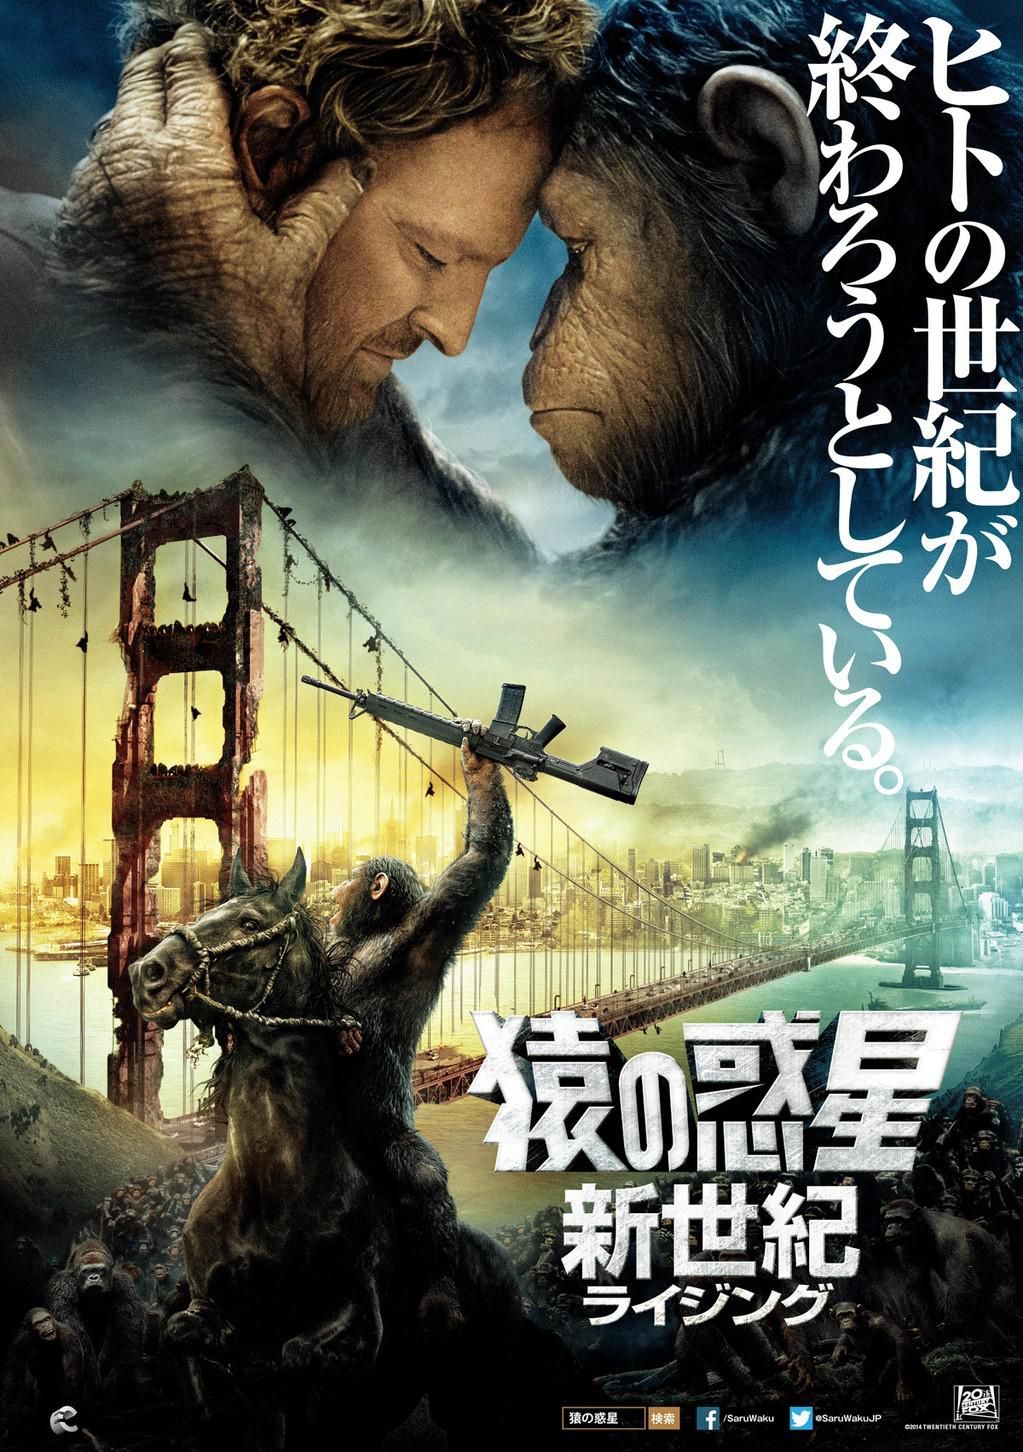 Apes 8 - Apes Revolution - Il Pianeta delle Scimmie - Dawn of the planet of the Apes (2014) poster